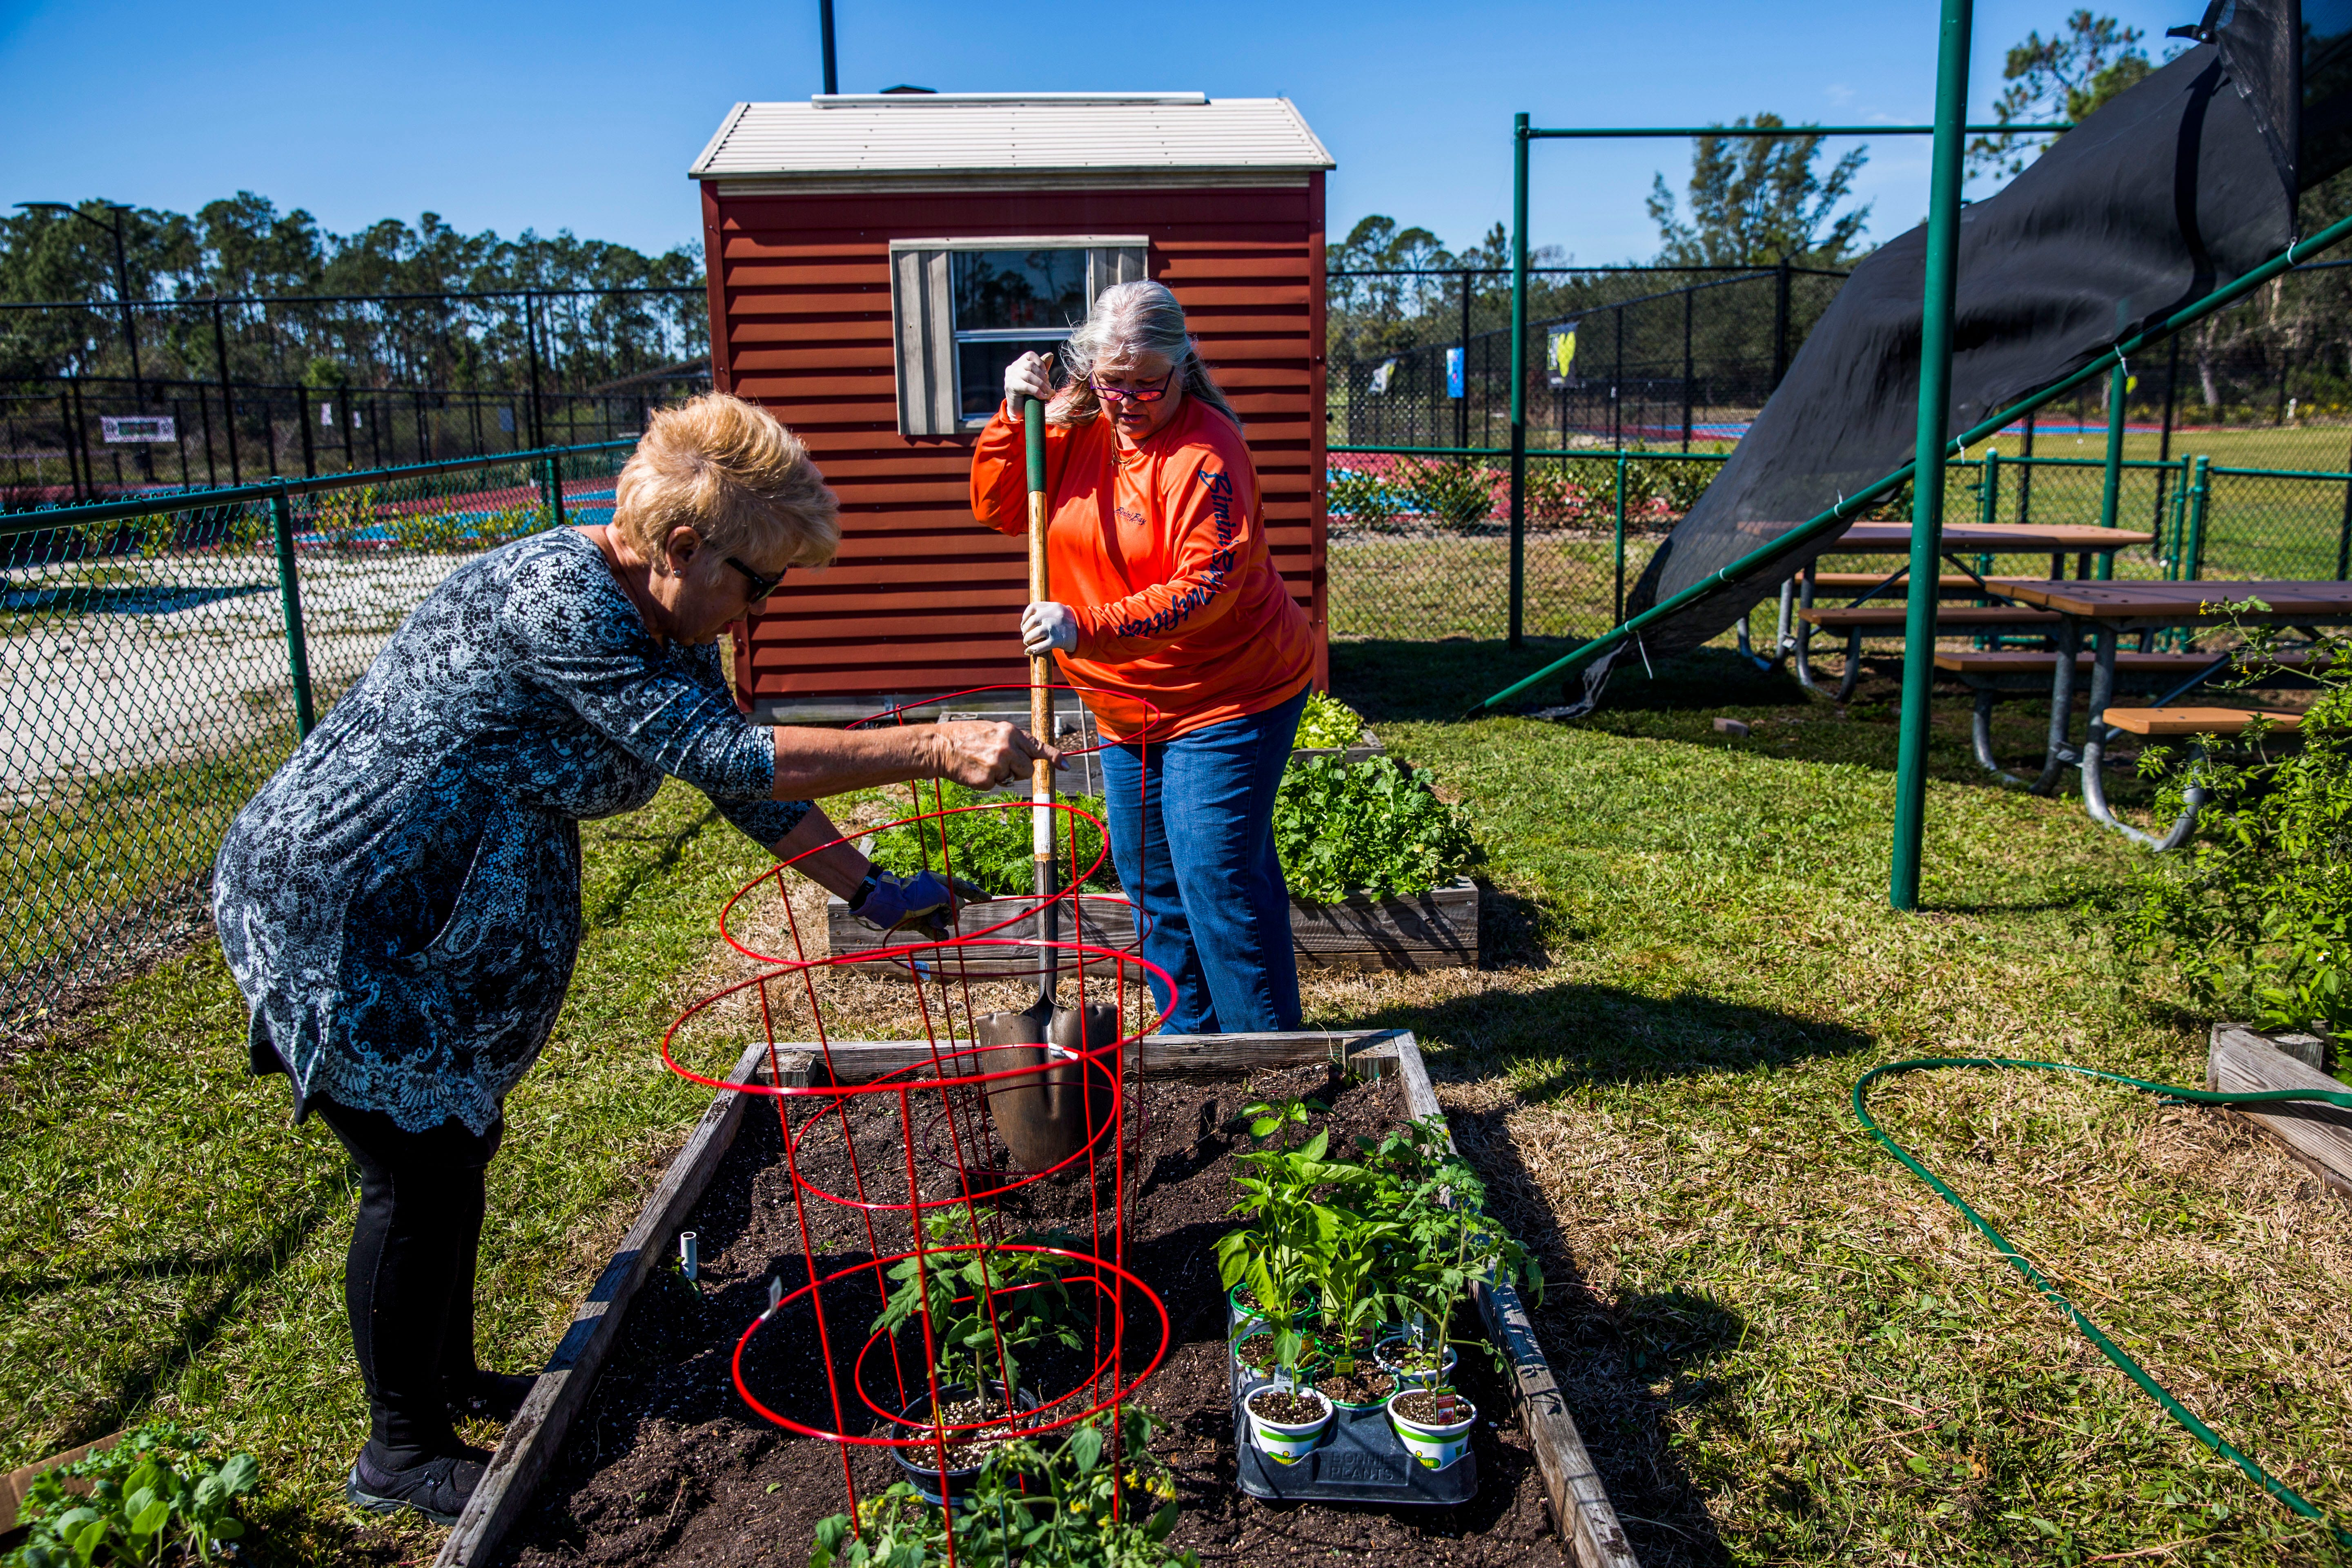 Pam Houndt, Right, And Merril Vitek Tend To Their Garden